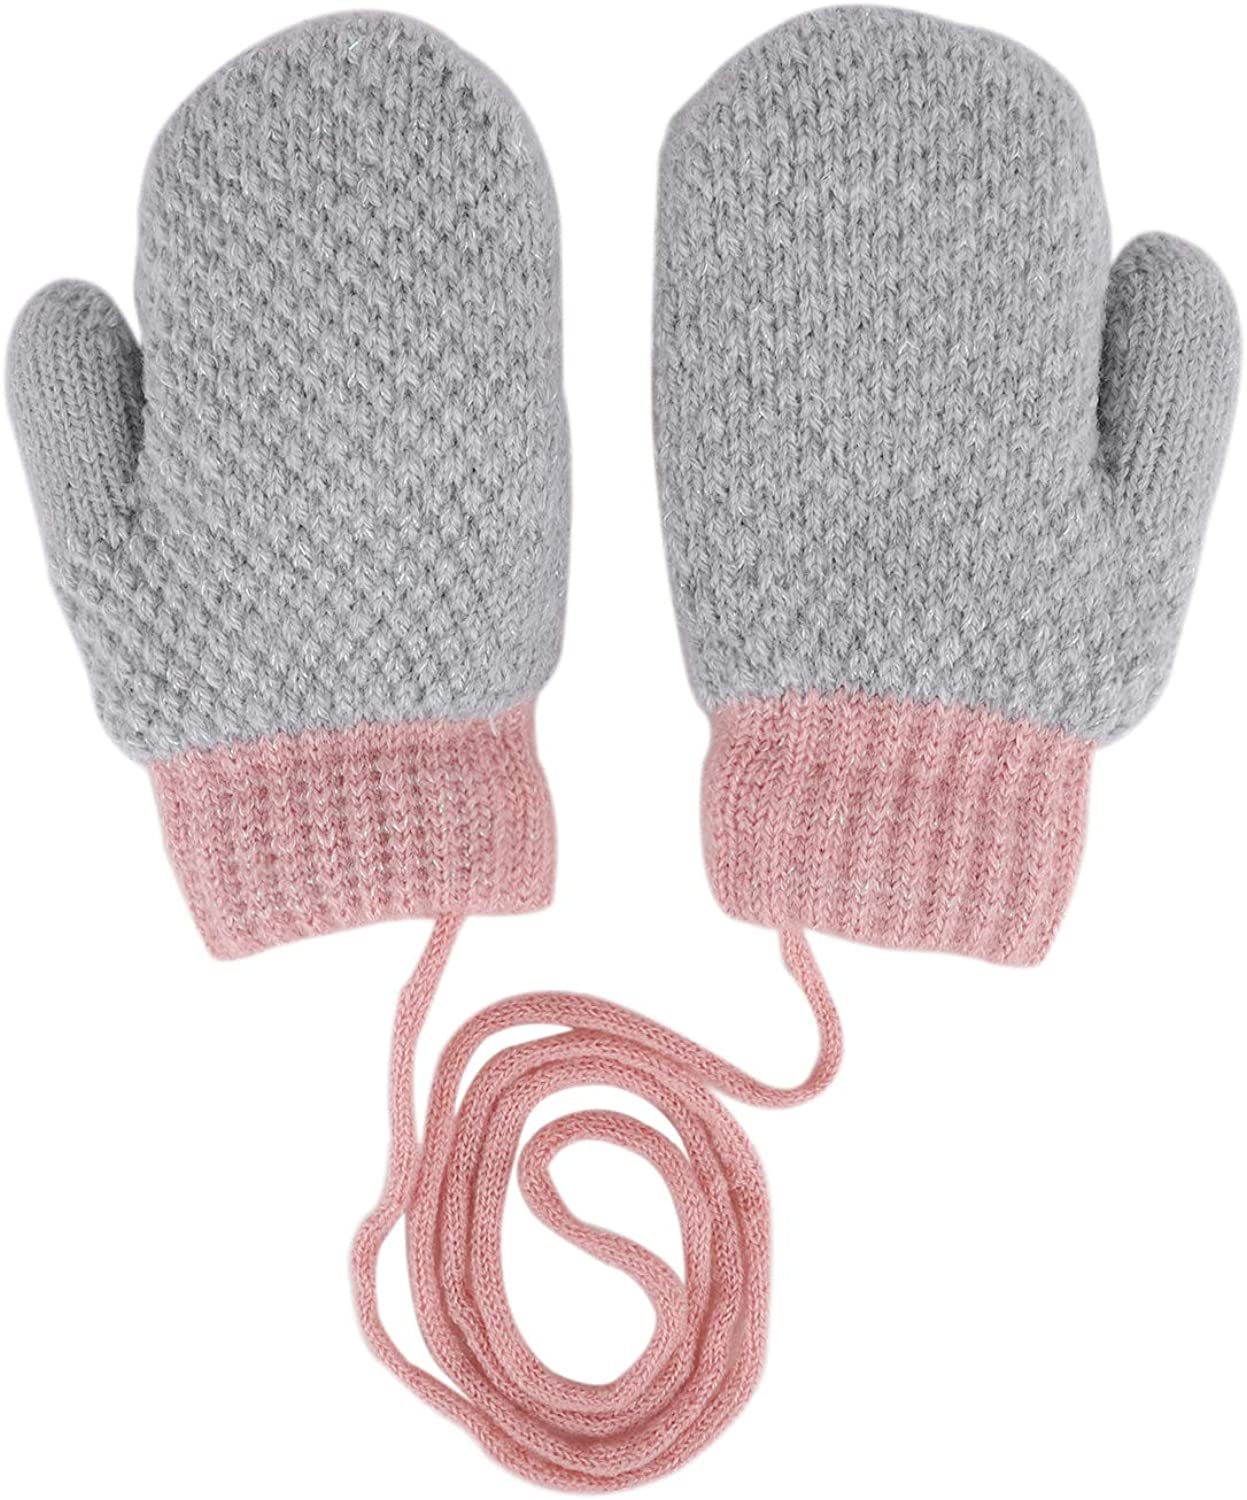 3D Cute Cartoon Bunny Gloves Boys Girls Warm Knitted Mittens Plush Lined Thick Thermal Full-finger Mittens with Anti-lost Neck Hang String Outdoor Hand Wear for Kids Ages 0 to 3